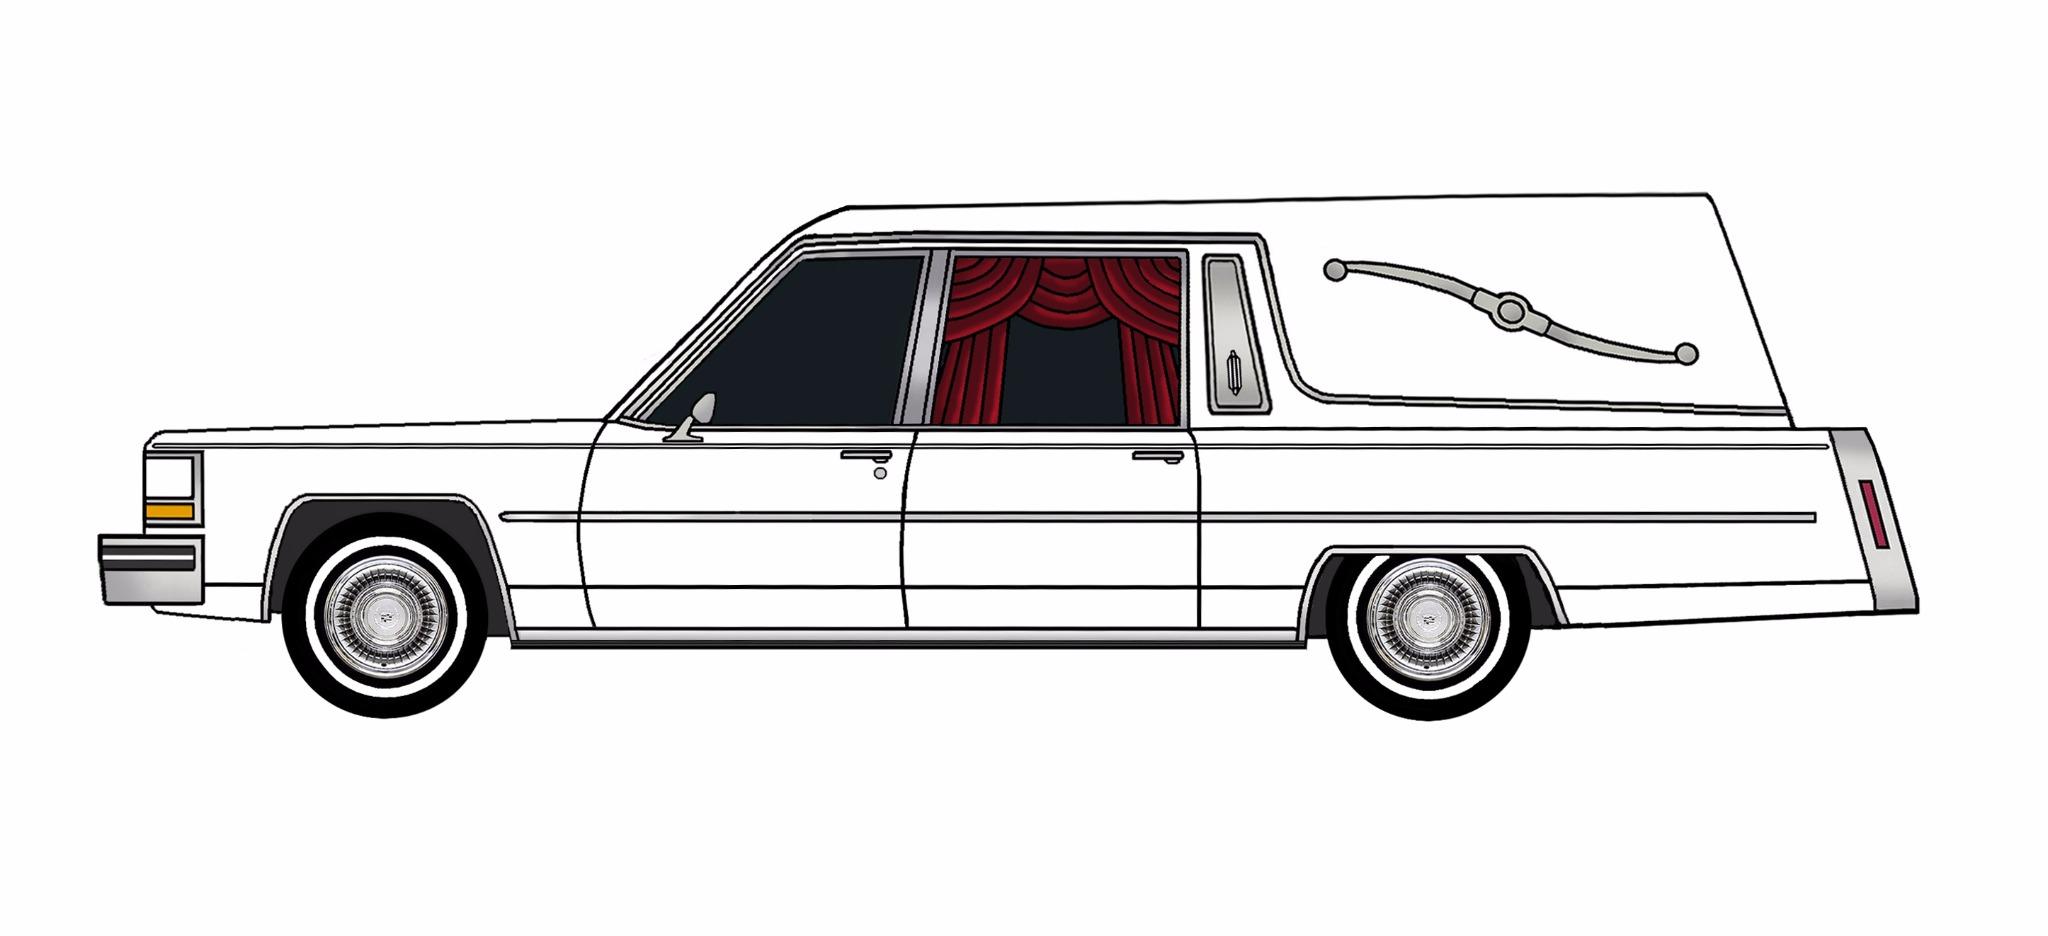 1980 Cadillac Fleetwood Hearse WHITE